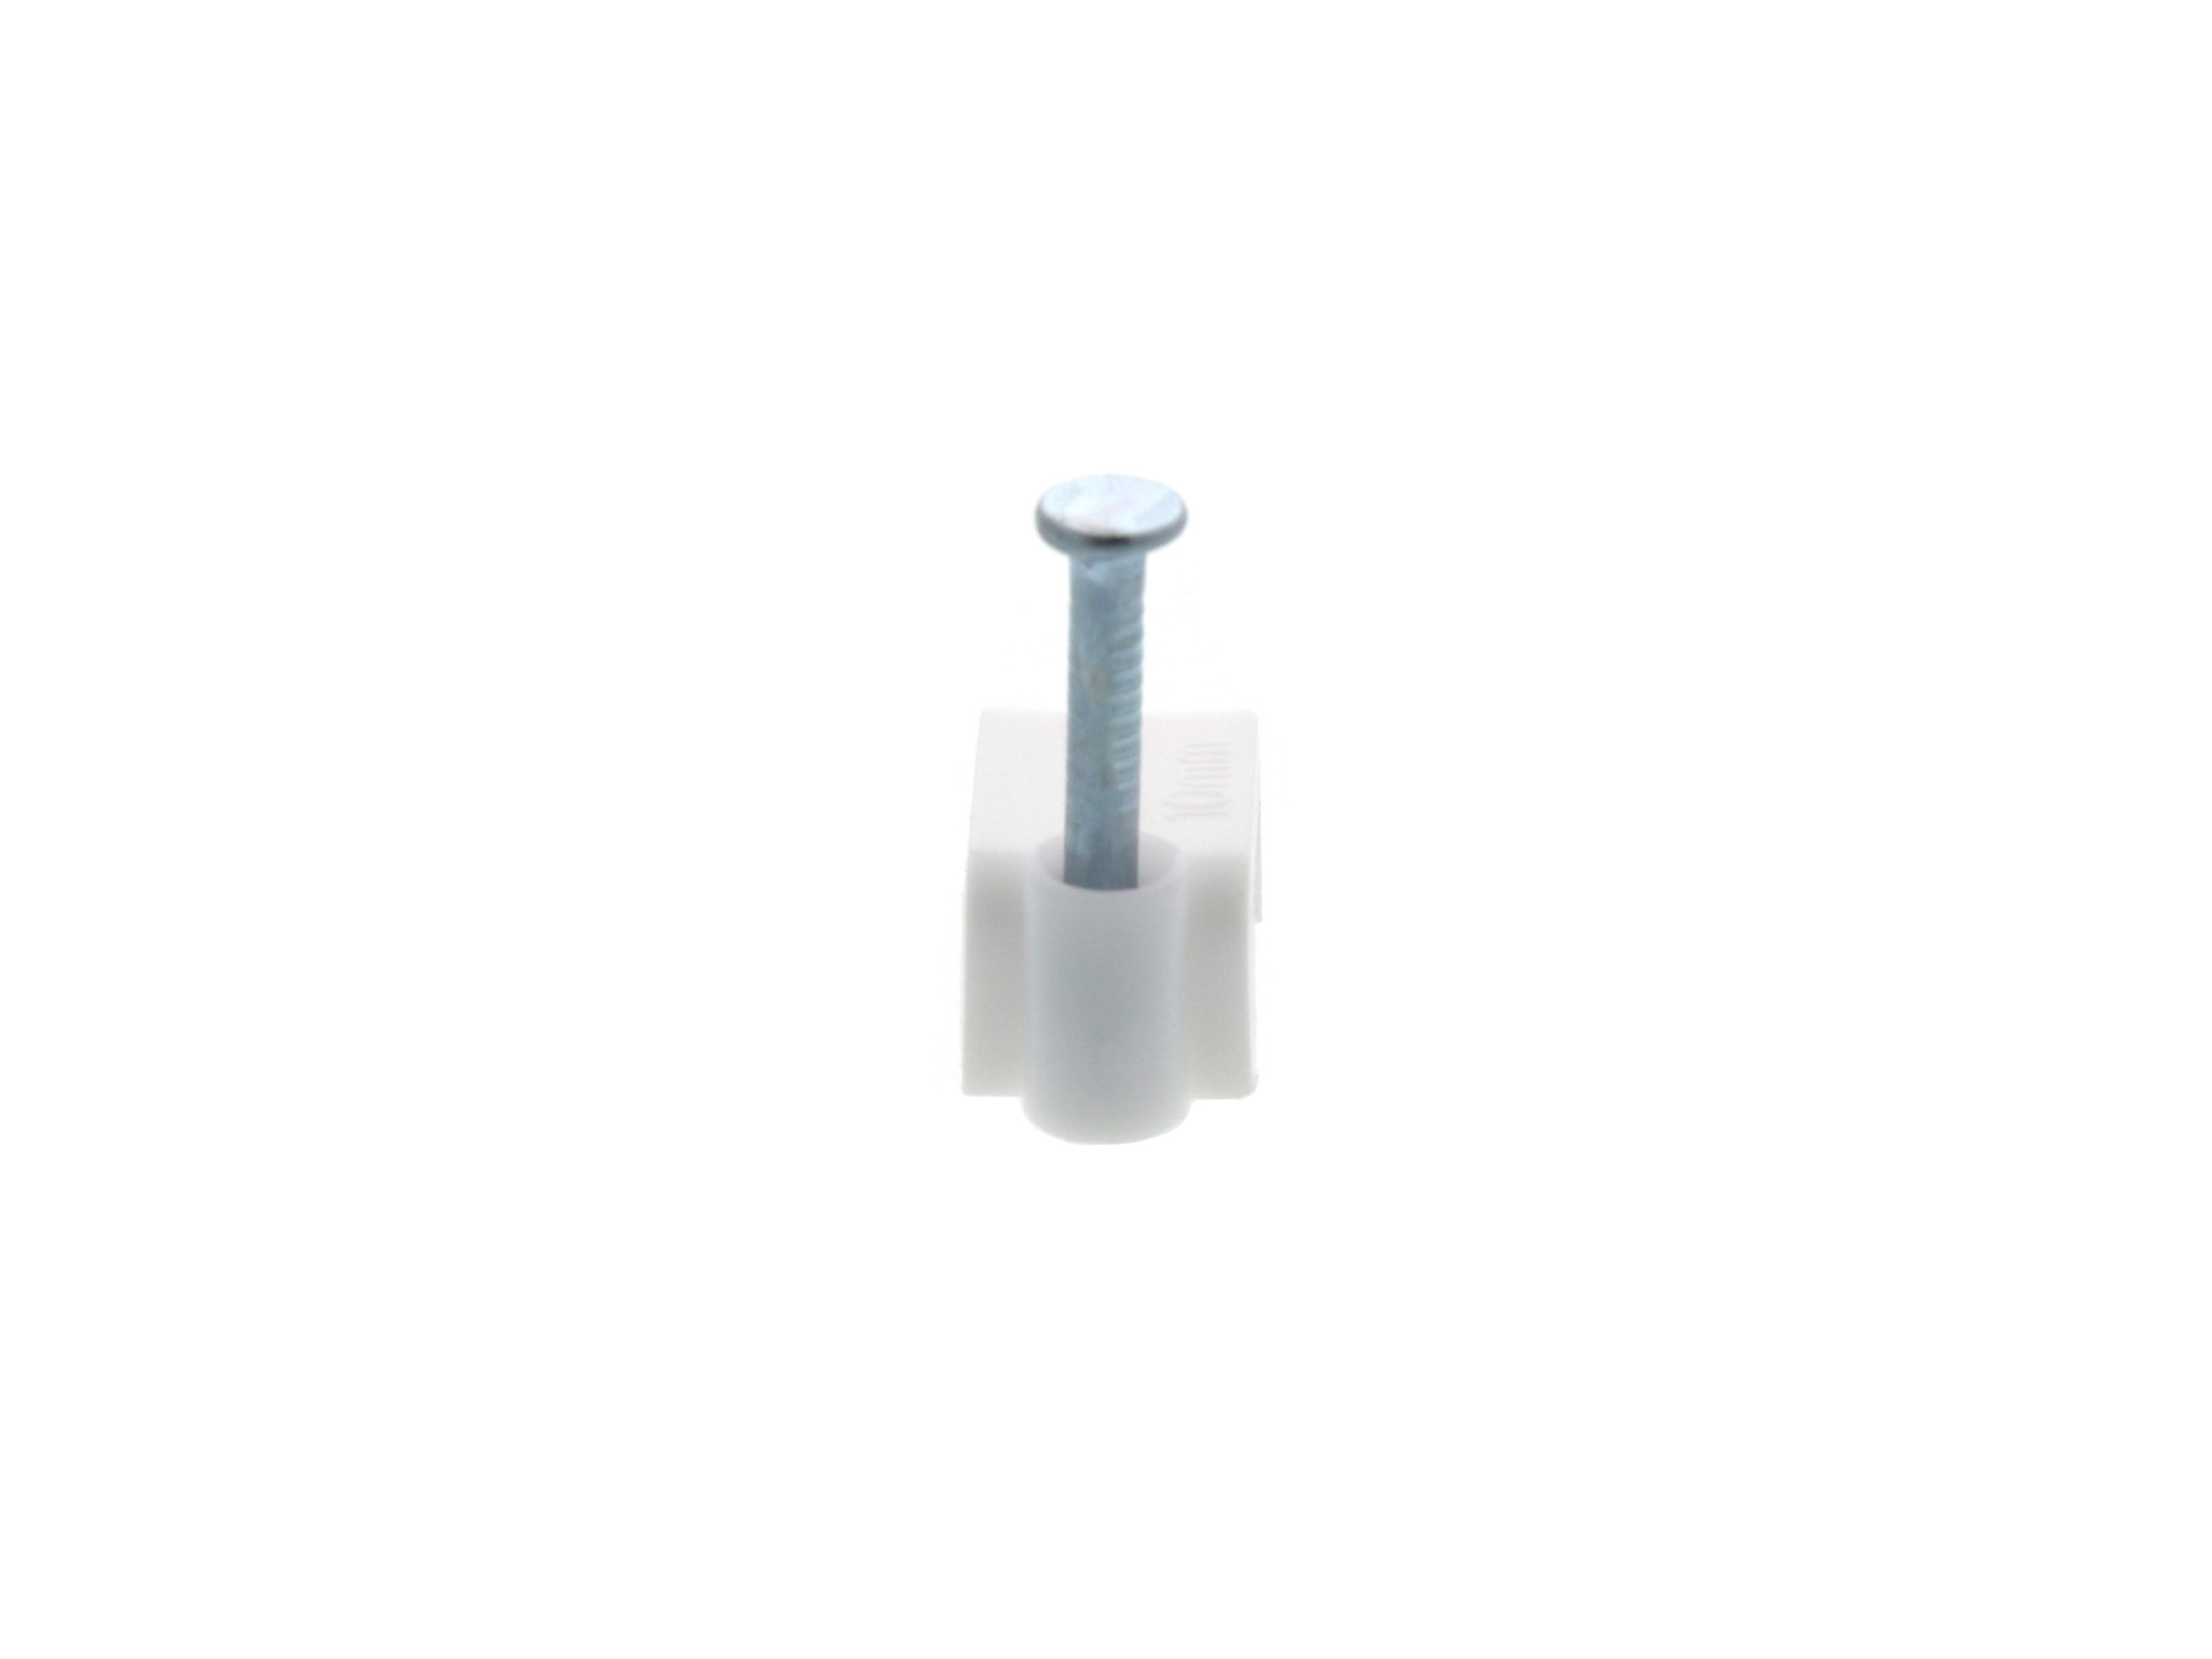 10mm White Flat Nail Cable Clip - 100 Pack on black white black, black white cube, black white pin, black white washer, black white tools, black white panel, black white bowl, black white oval, black white pail, black white movies, black white drum, black white seal, black white anime, black white window, black white nut, black white cap, black white toy,